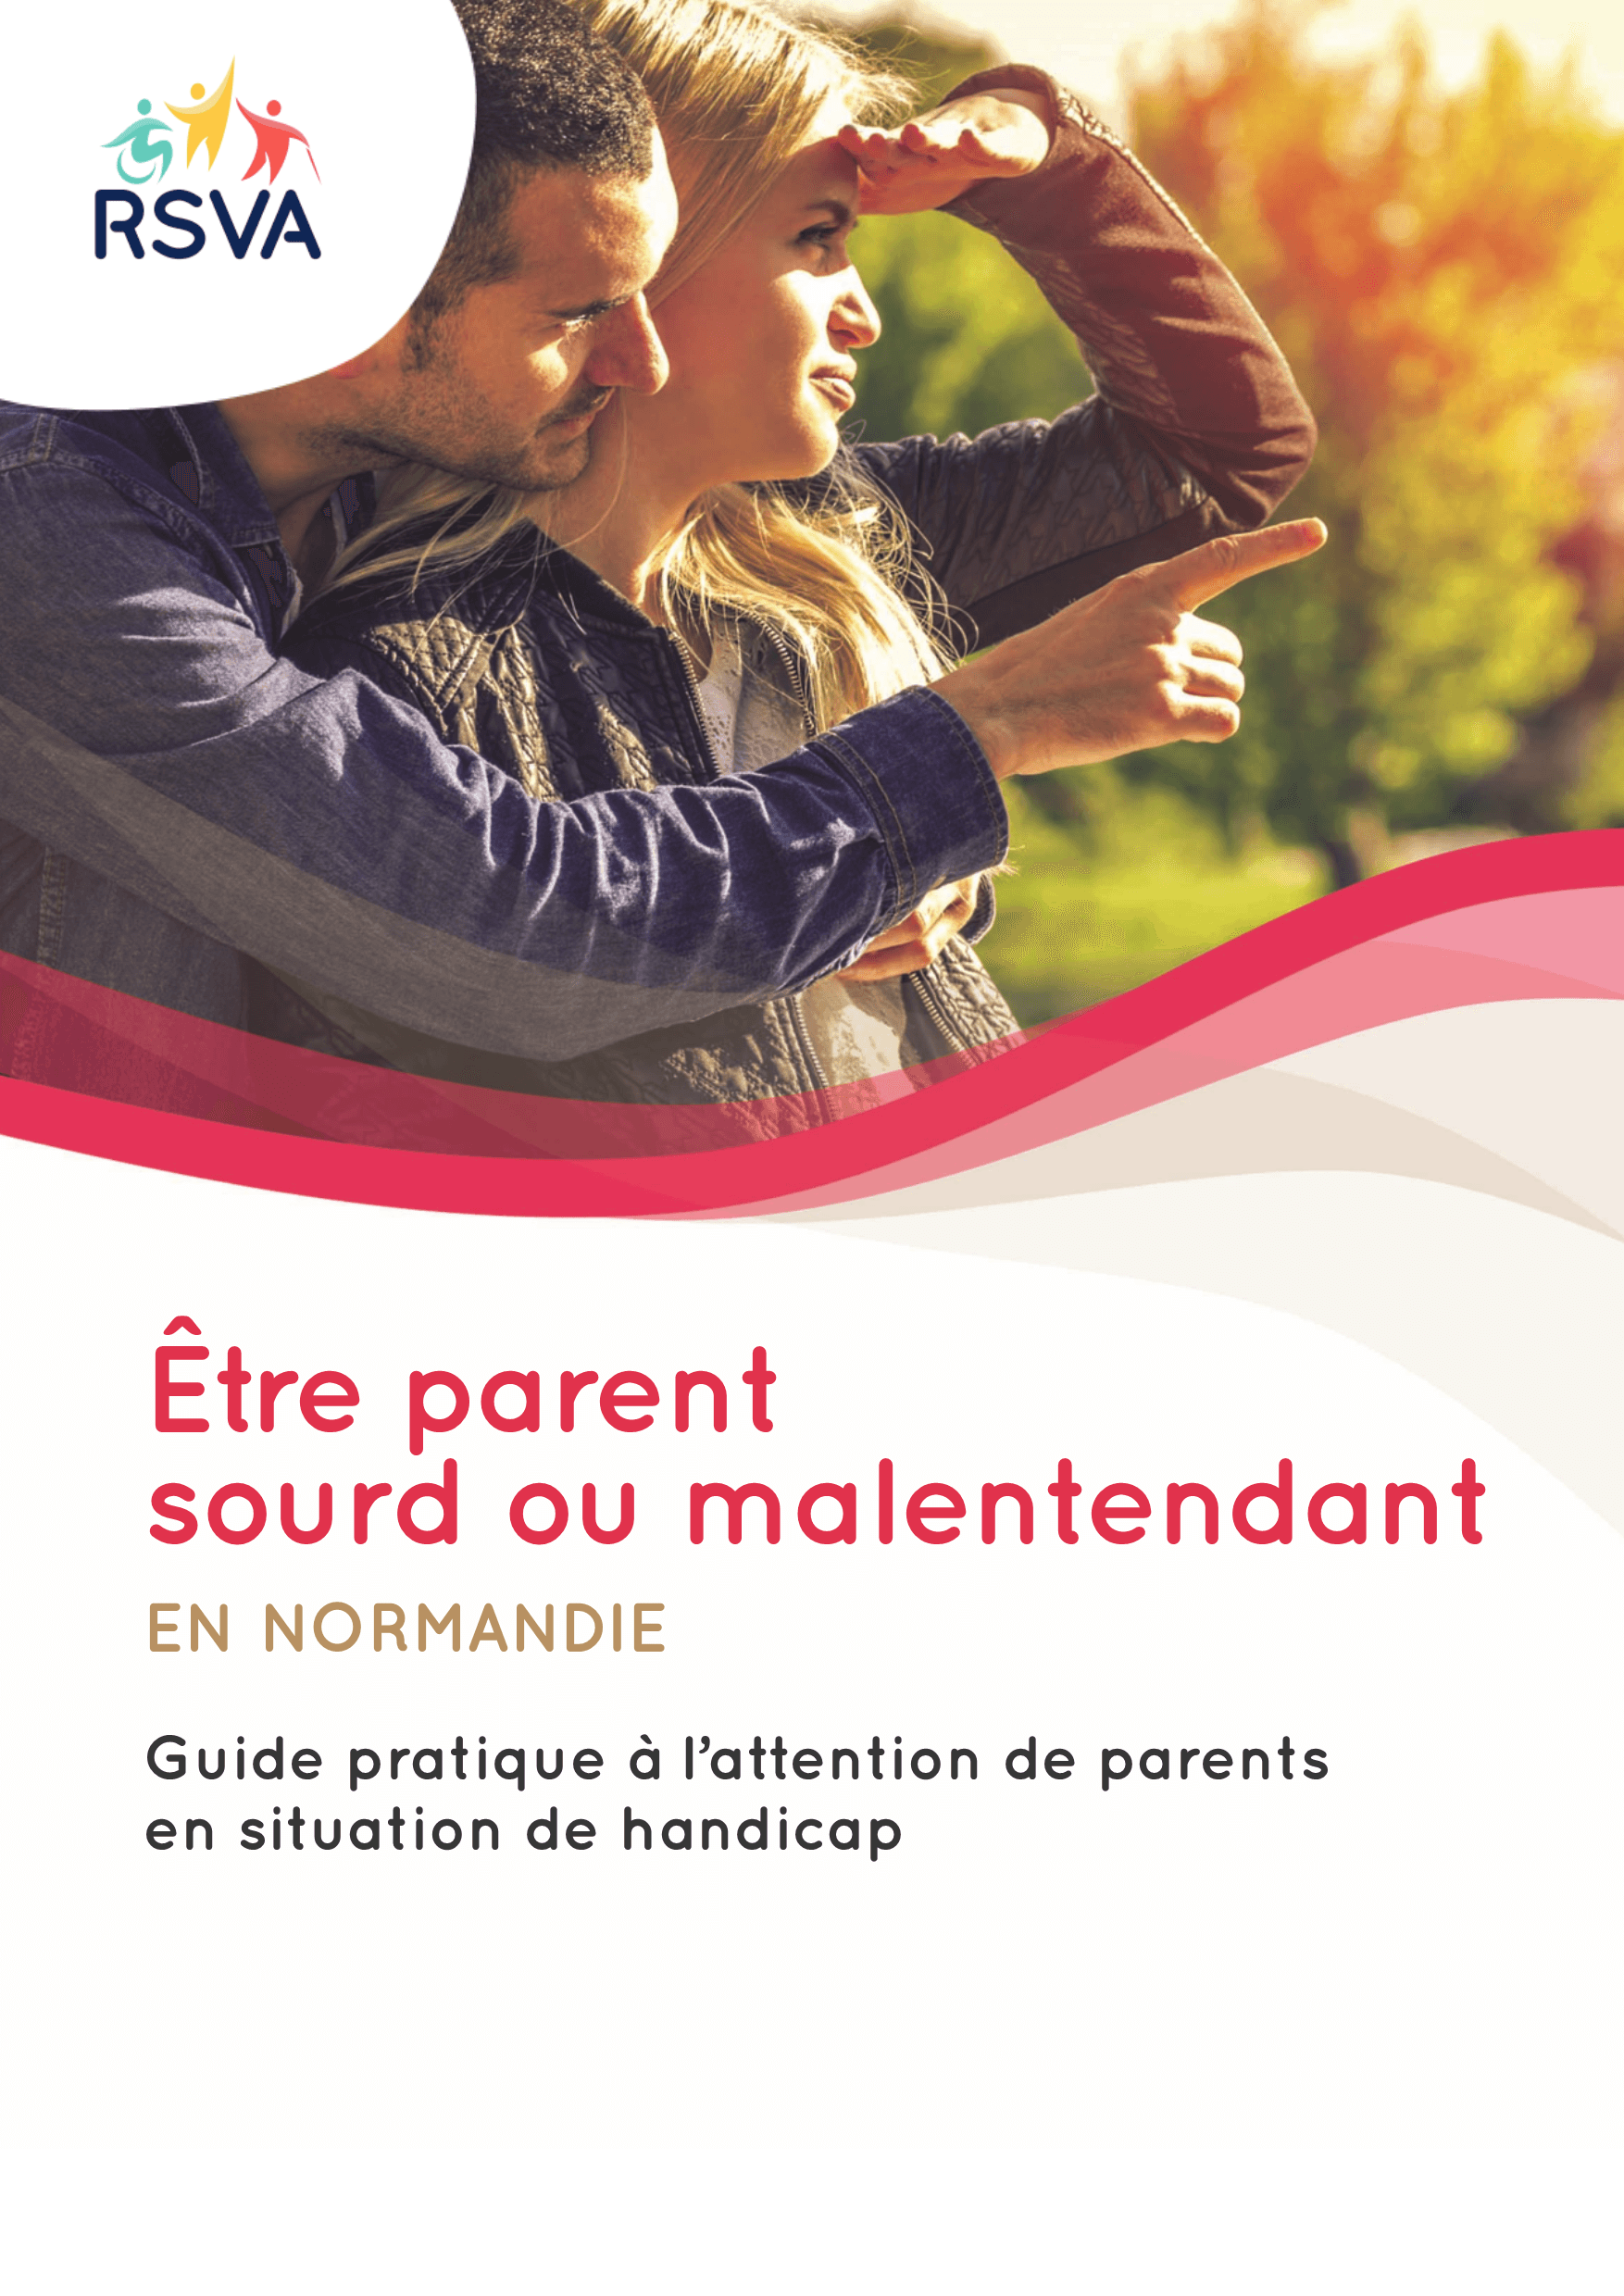 Guide parentalité et handicap auditif